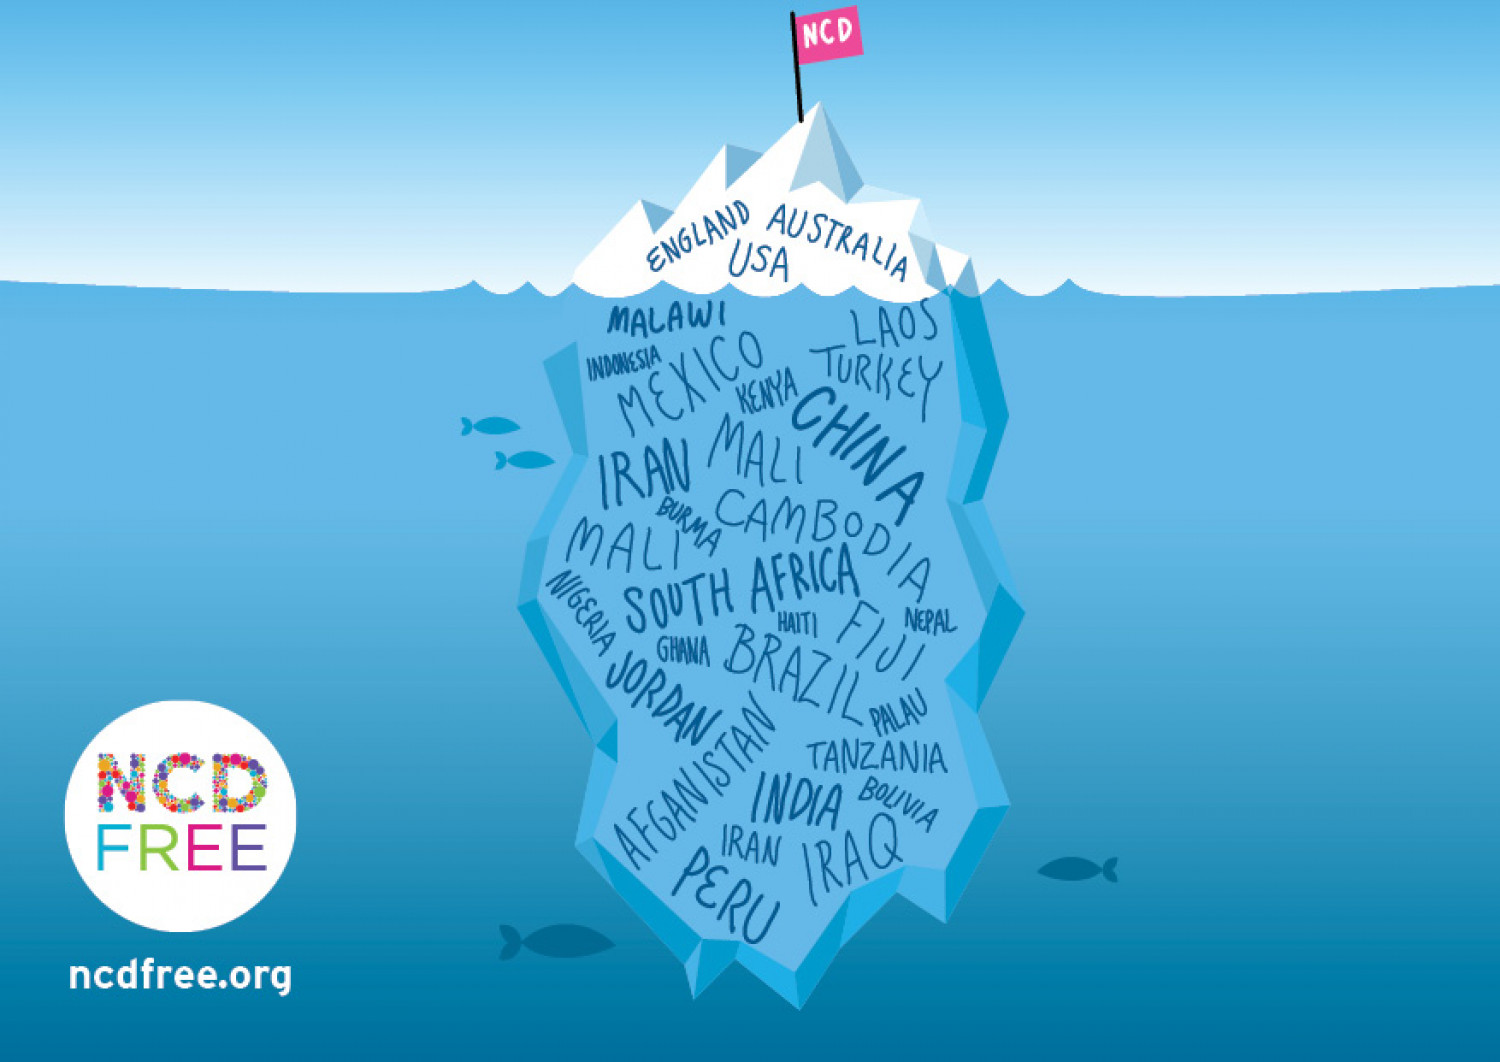 The NCD iceberg Infographic